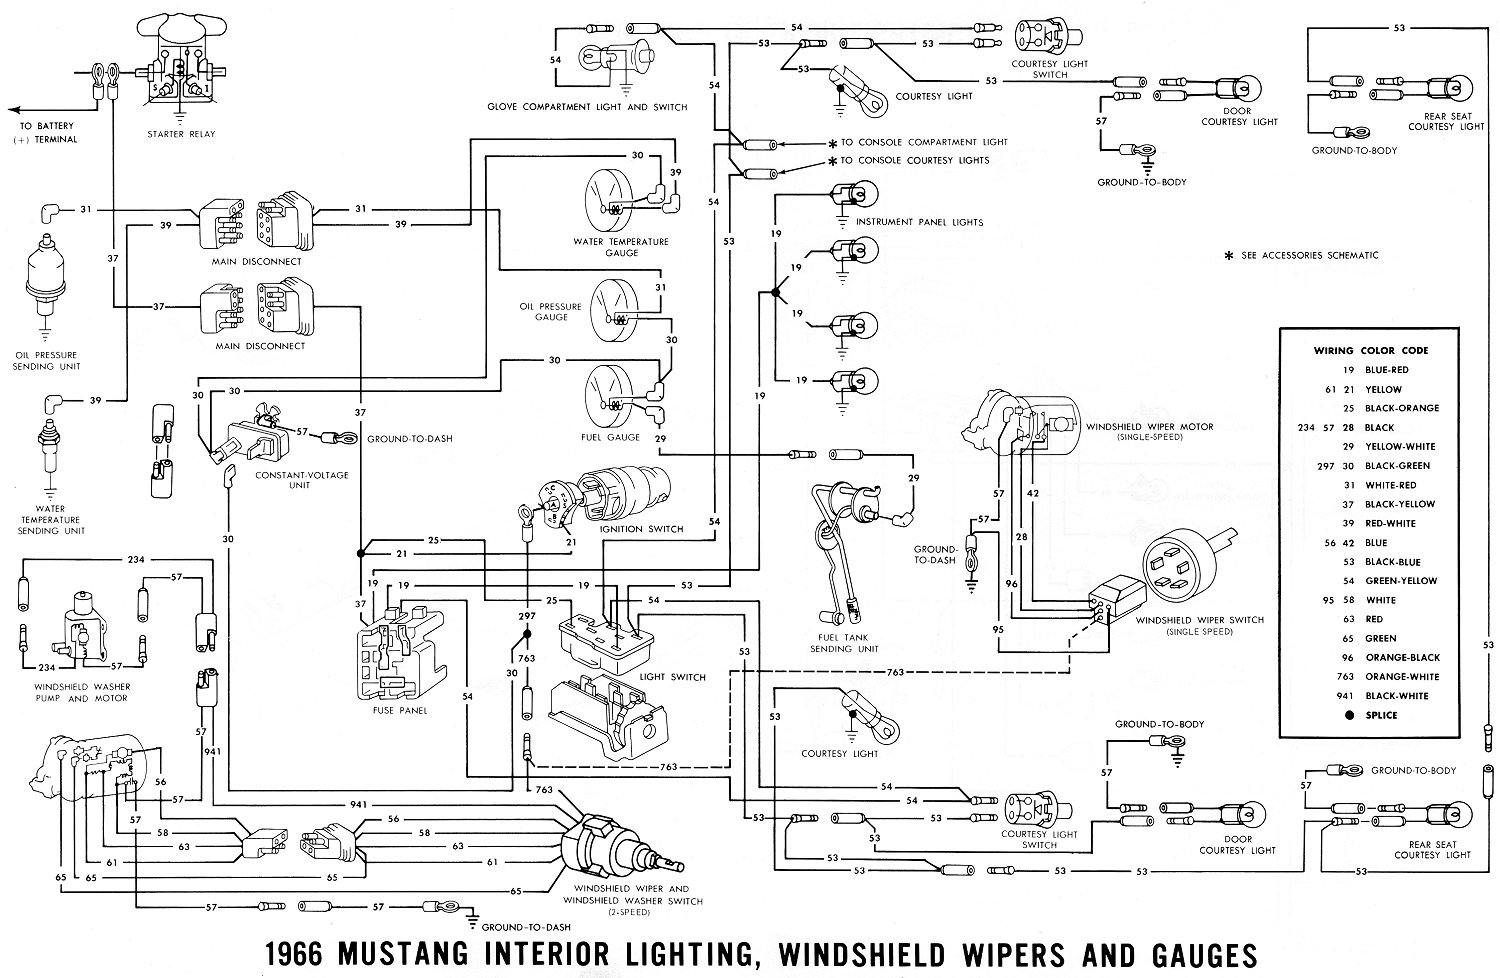 66inter1 1966 mustang wiring diagrams average joe restoration 1966 mustang wiring harness at readyjetset.co